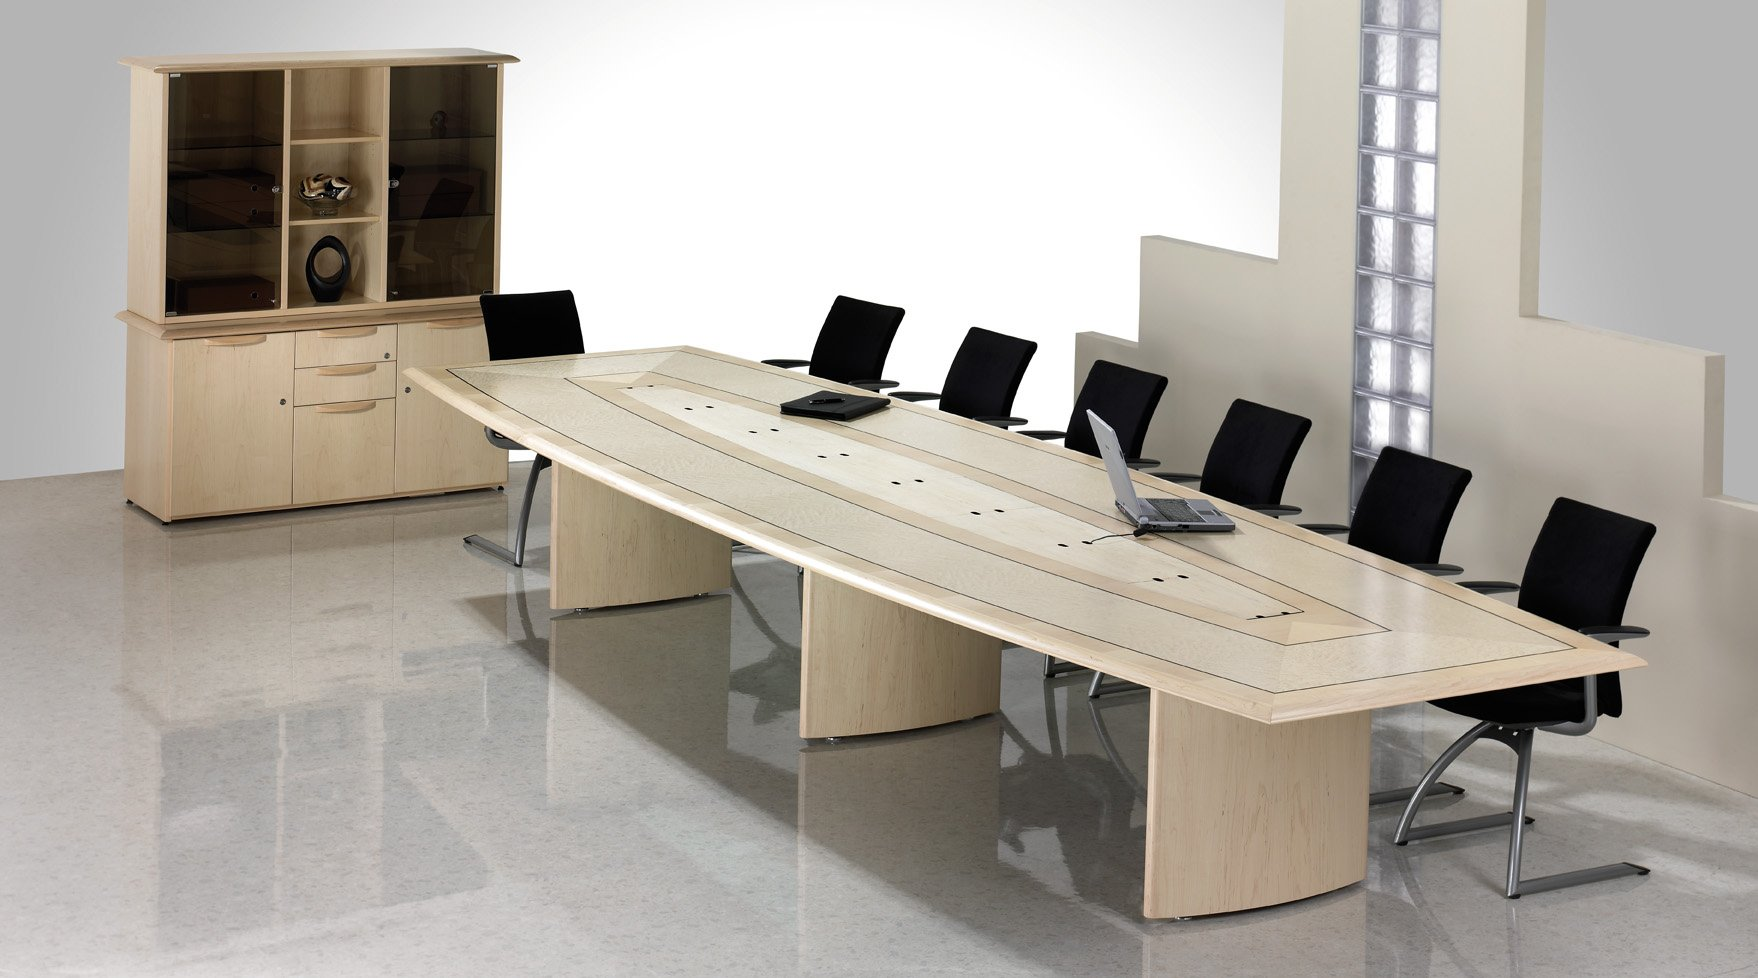 boardroom-office-furniture